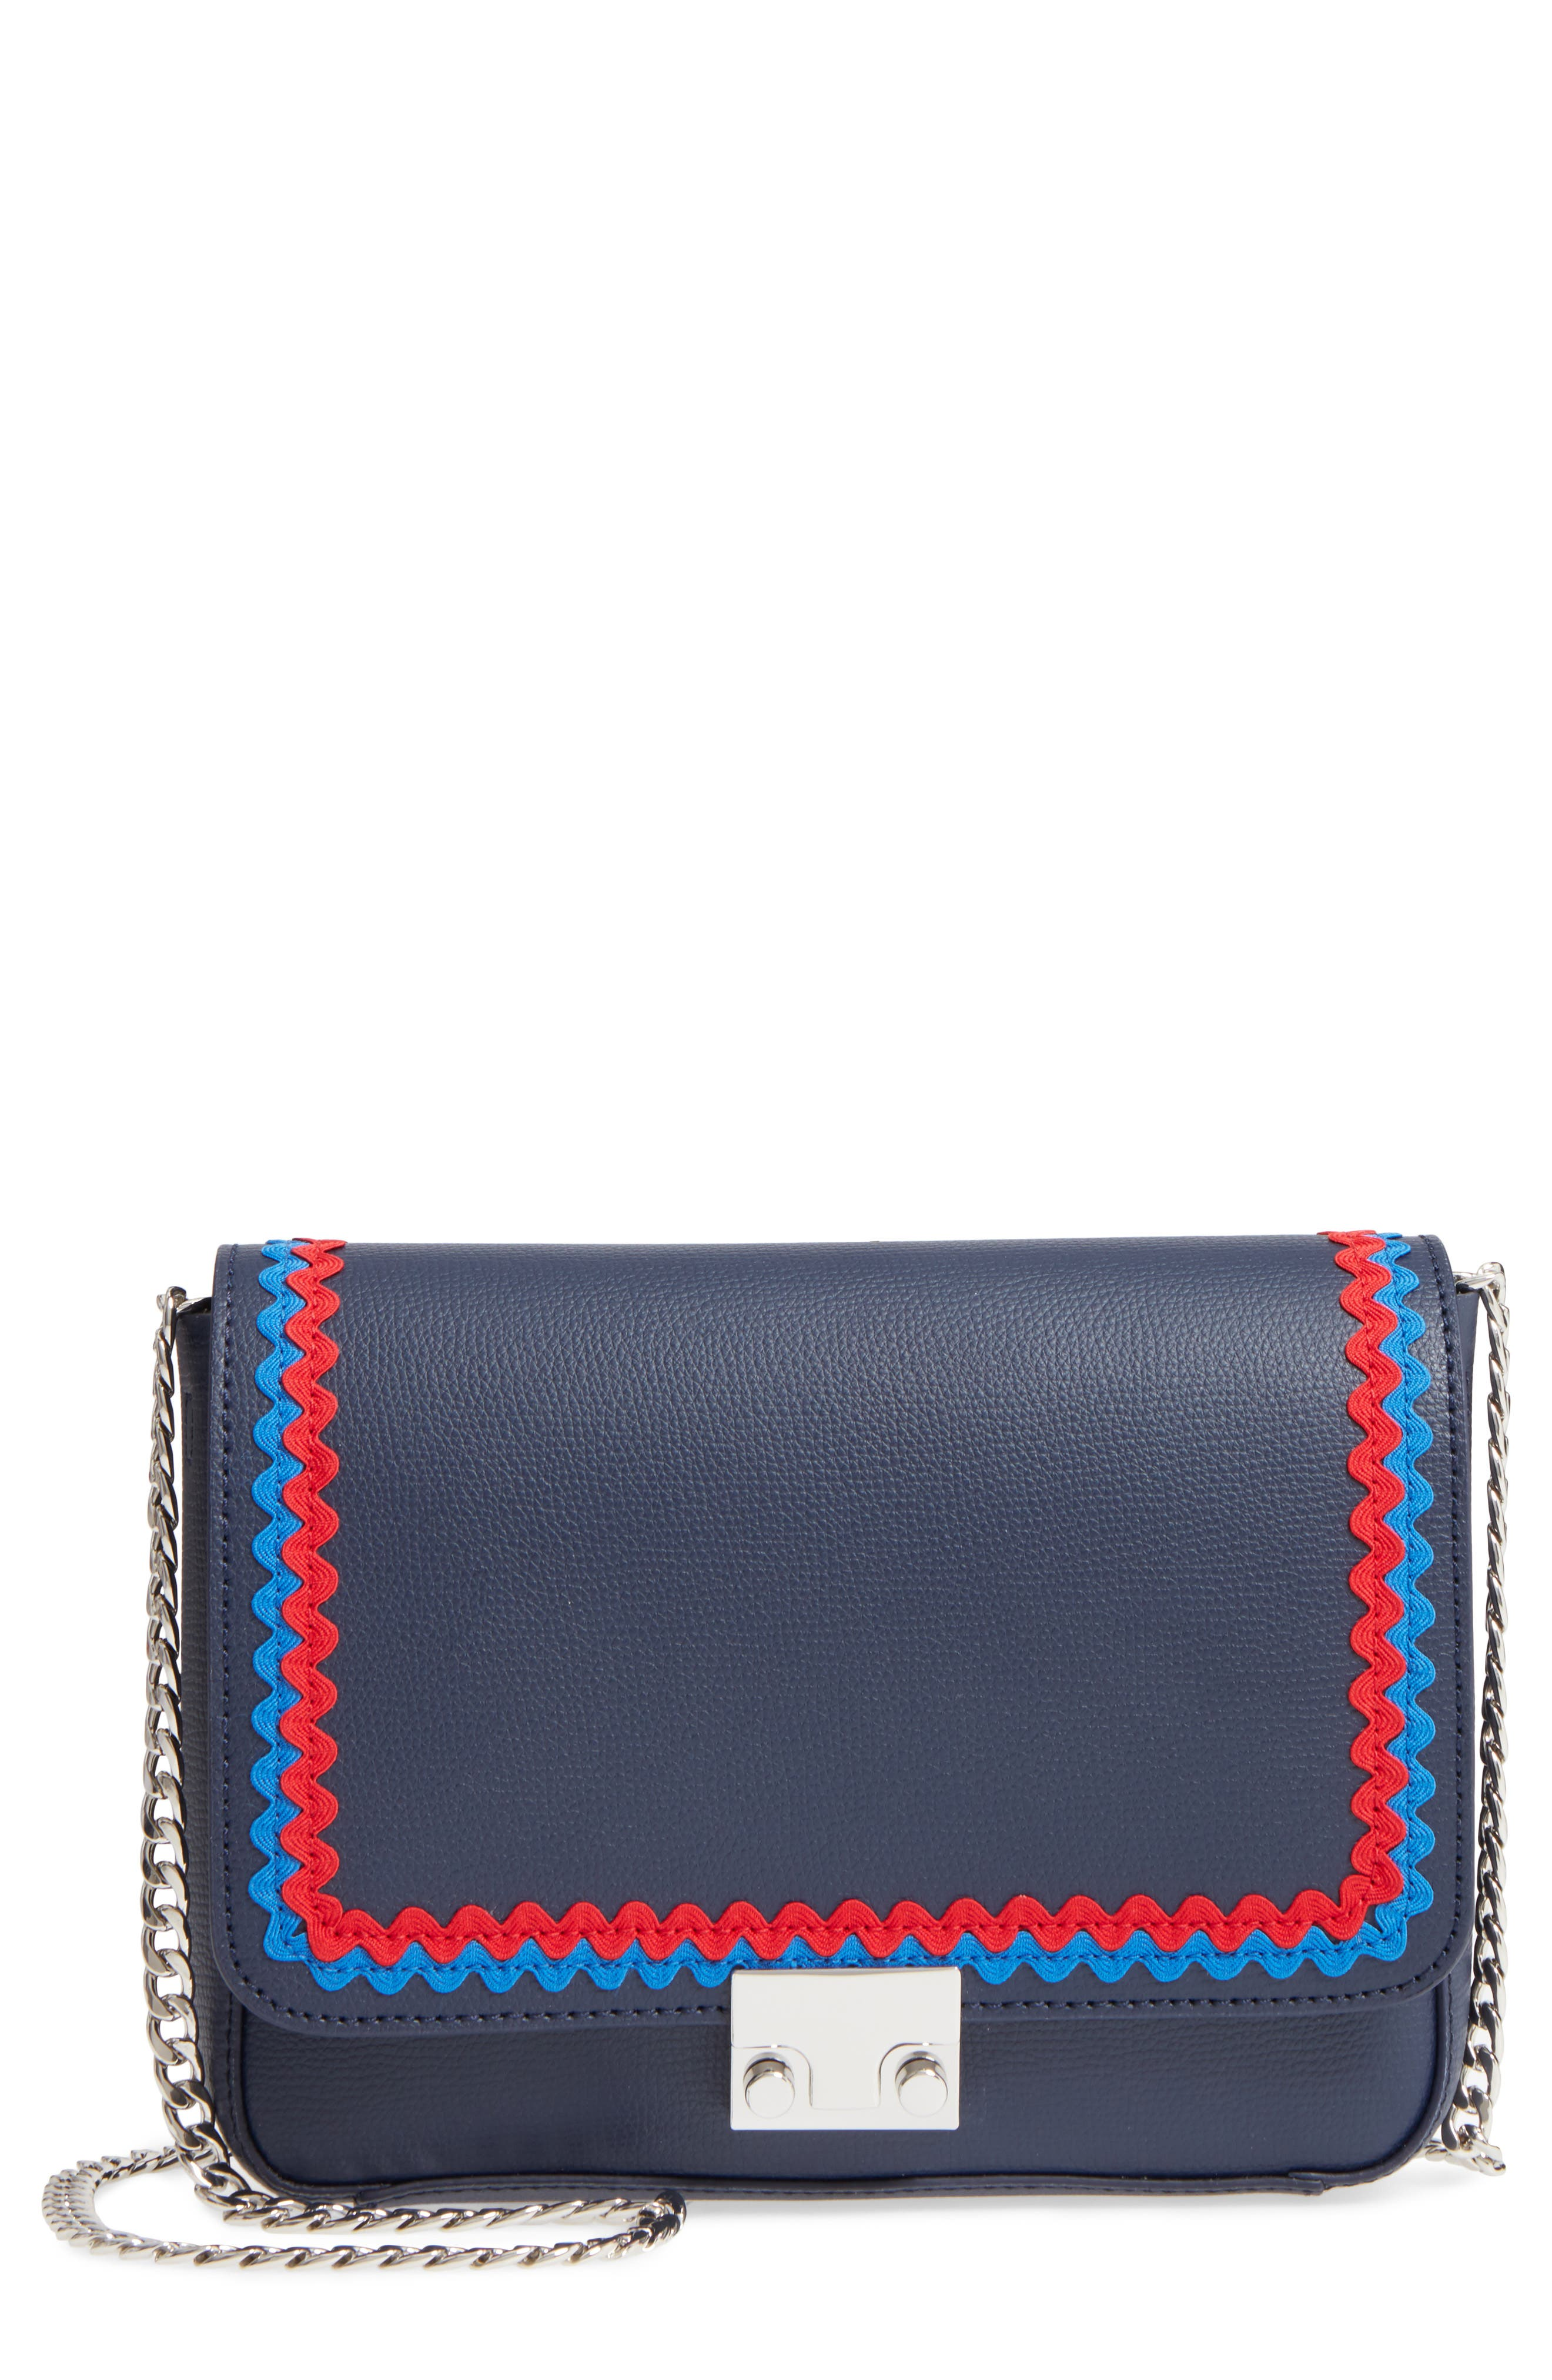 Lock Leather Flap Clutch/Shoulder Bag,                         Main,                         color, Eclipse/ Multi